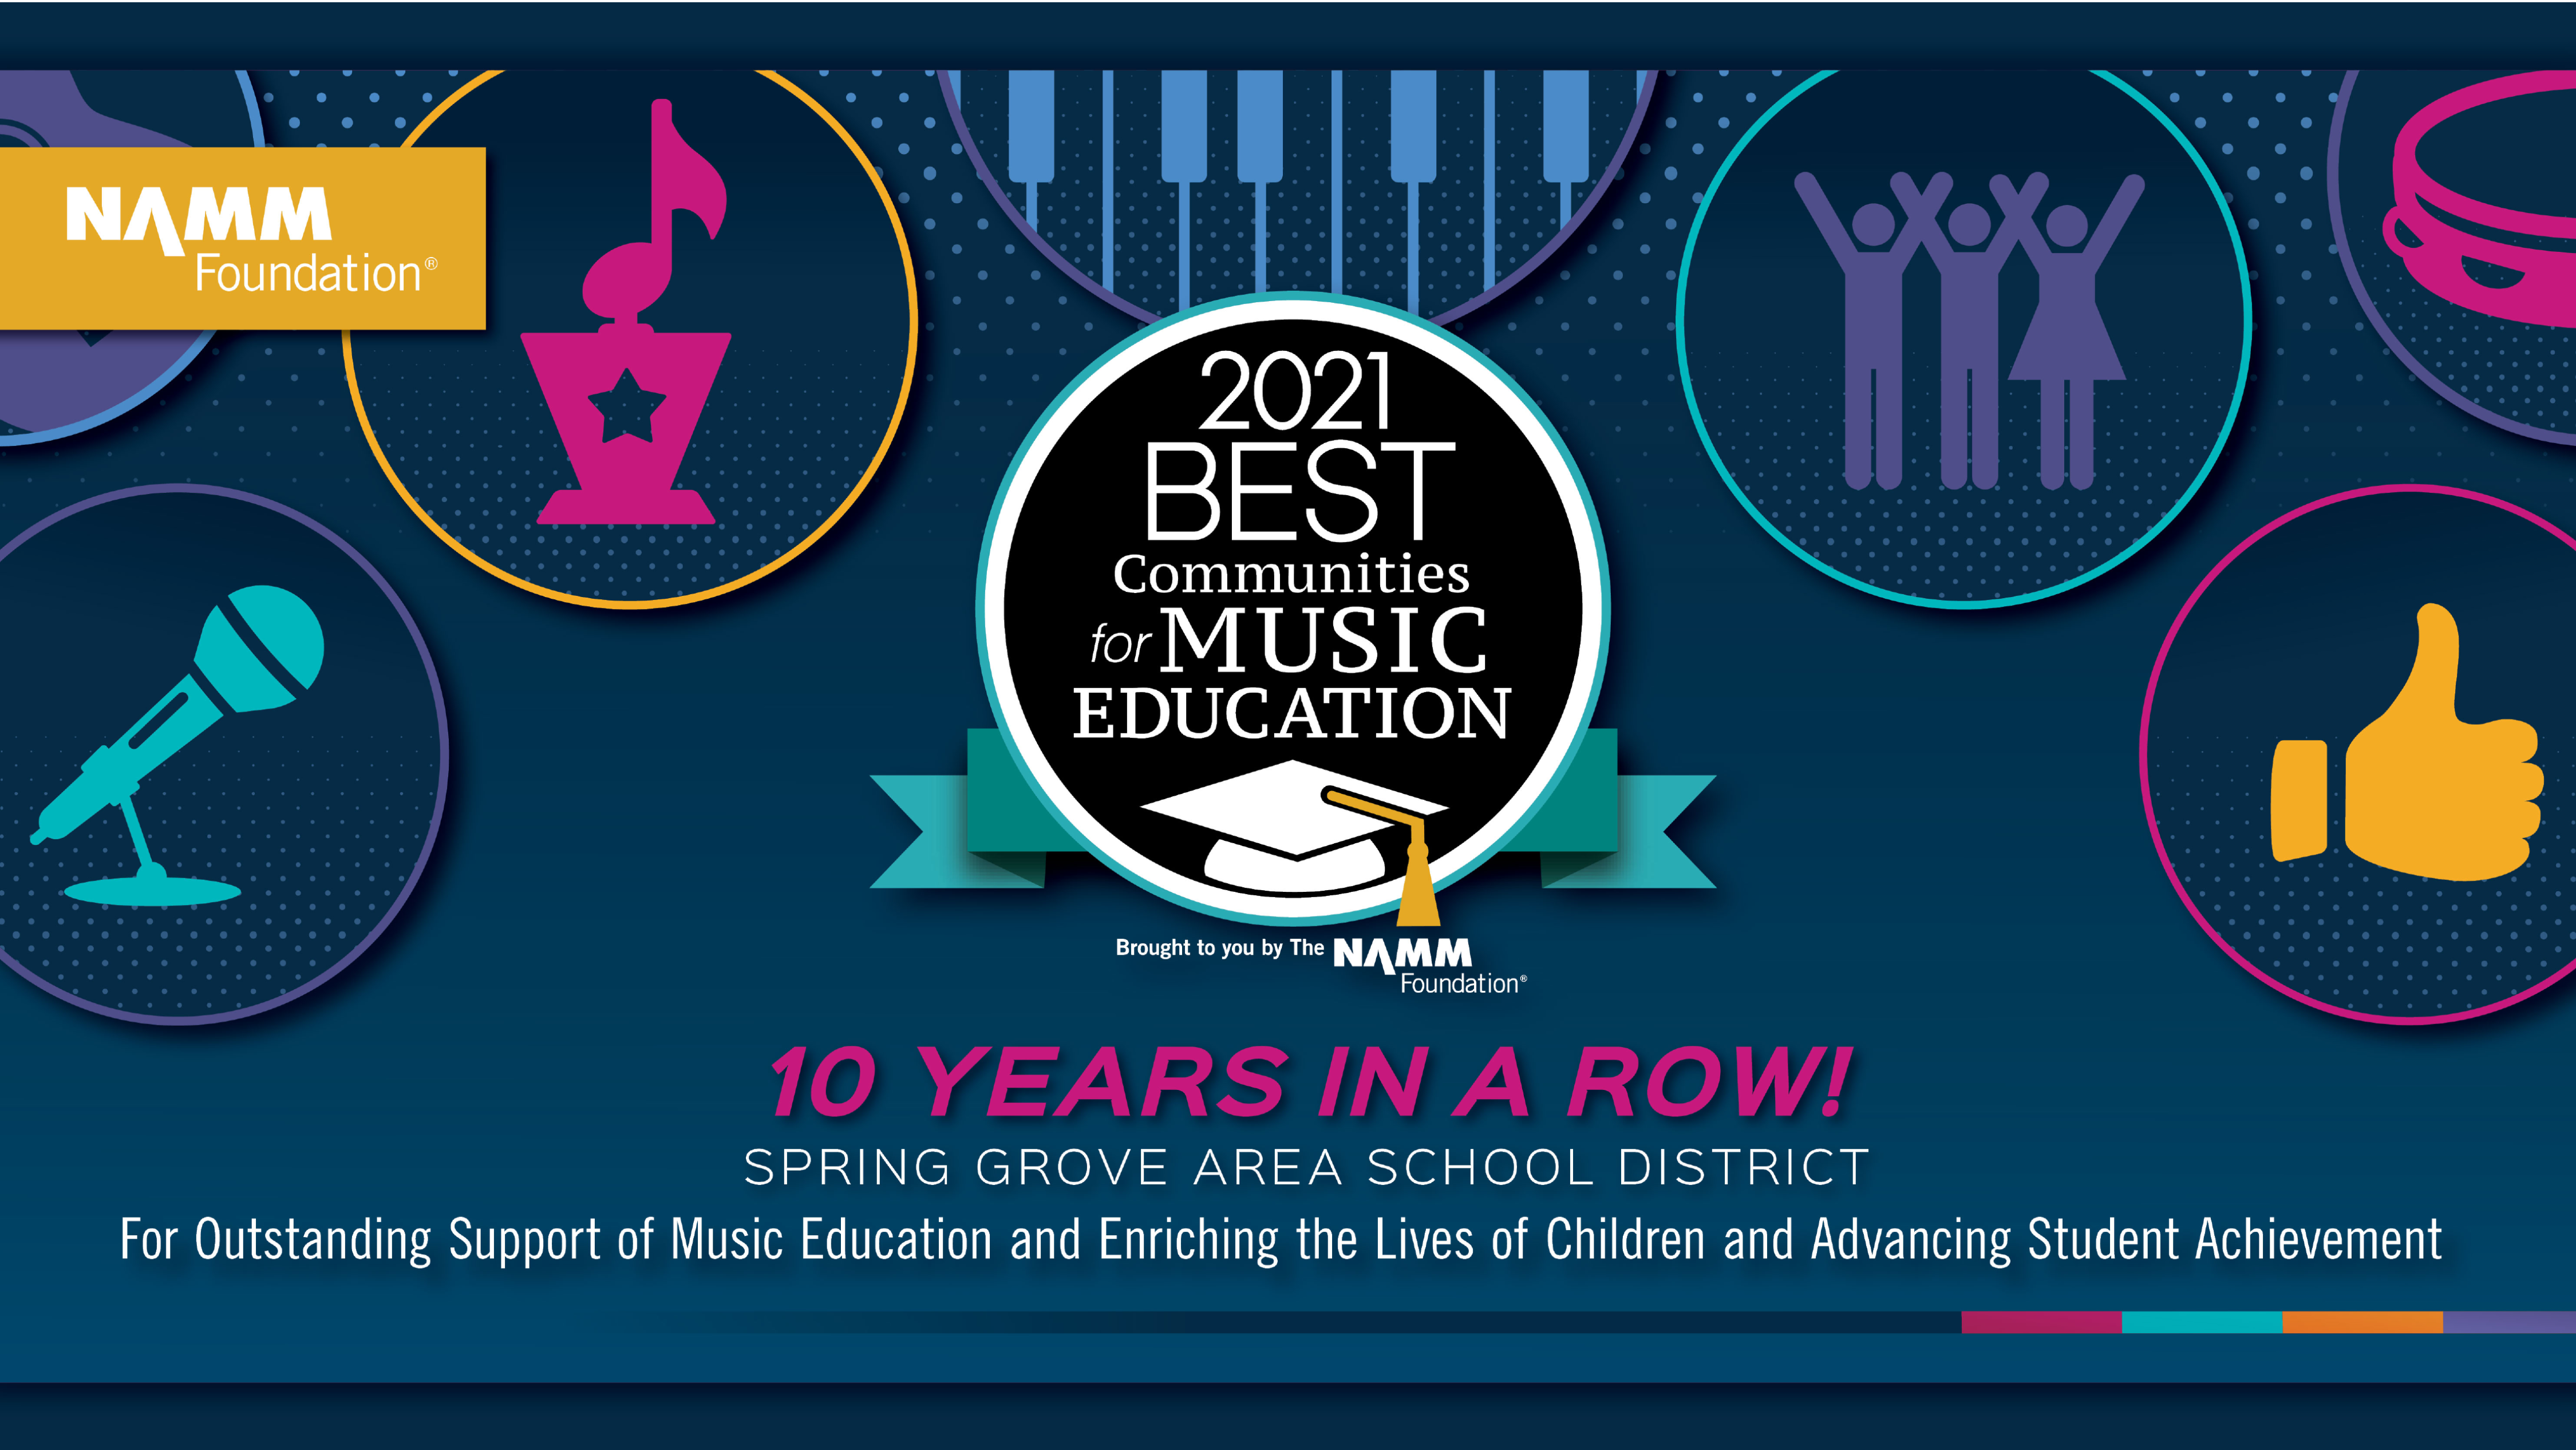 2021 Best Communities for Music Education - 10 Years in a Row